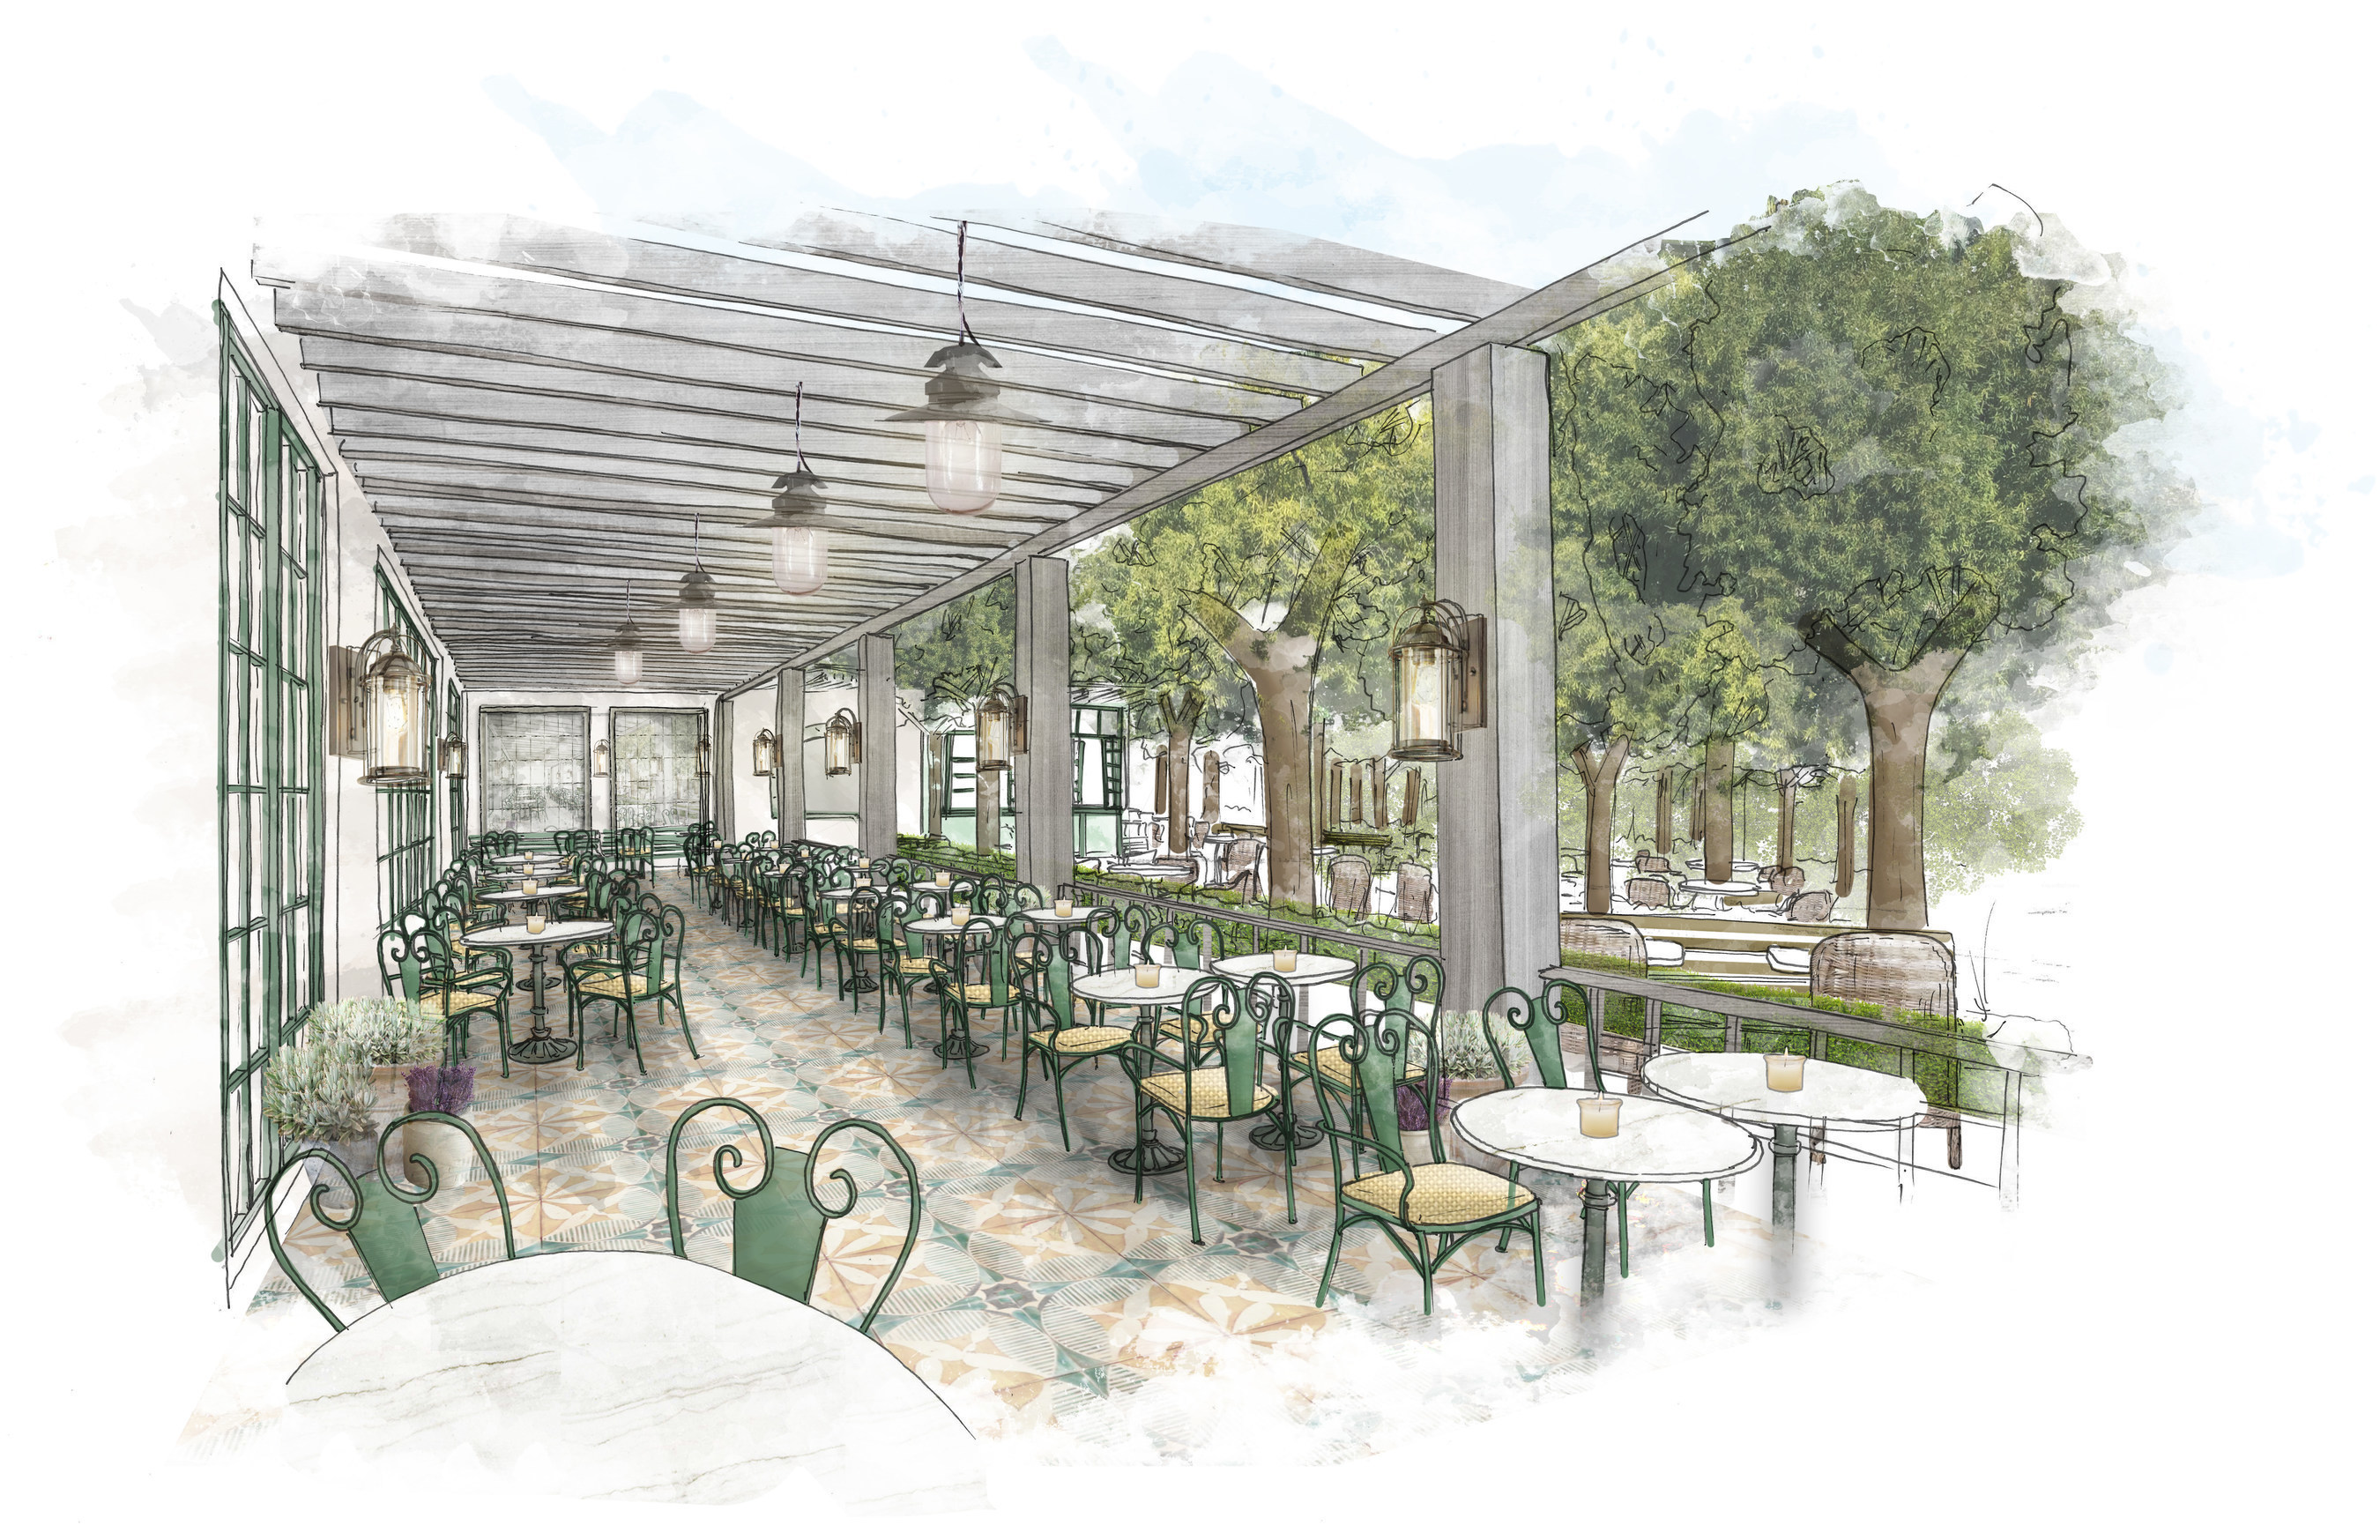 Restaurant Terrace: MGM Resorts International and Sydell Group announced a partnership to reimagine Monte Carlo Resort on the famed Las Vegas Strip with two distinct hotel experiences - Park MGM and The NoMad Las Vegas. Both hotels will feature a collection of new dining experiences including an indoor-outdoor concept located off of Park MGM's lobby (seen here).